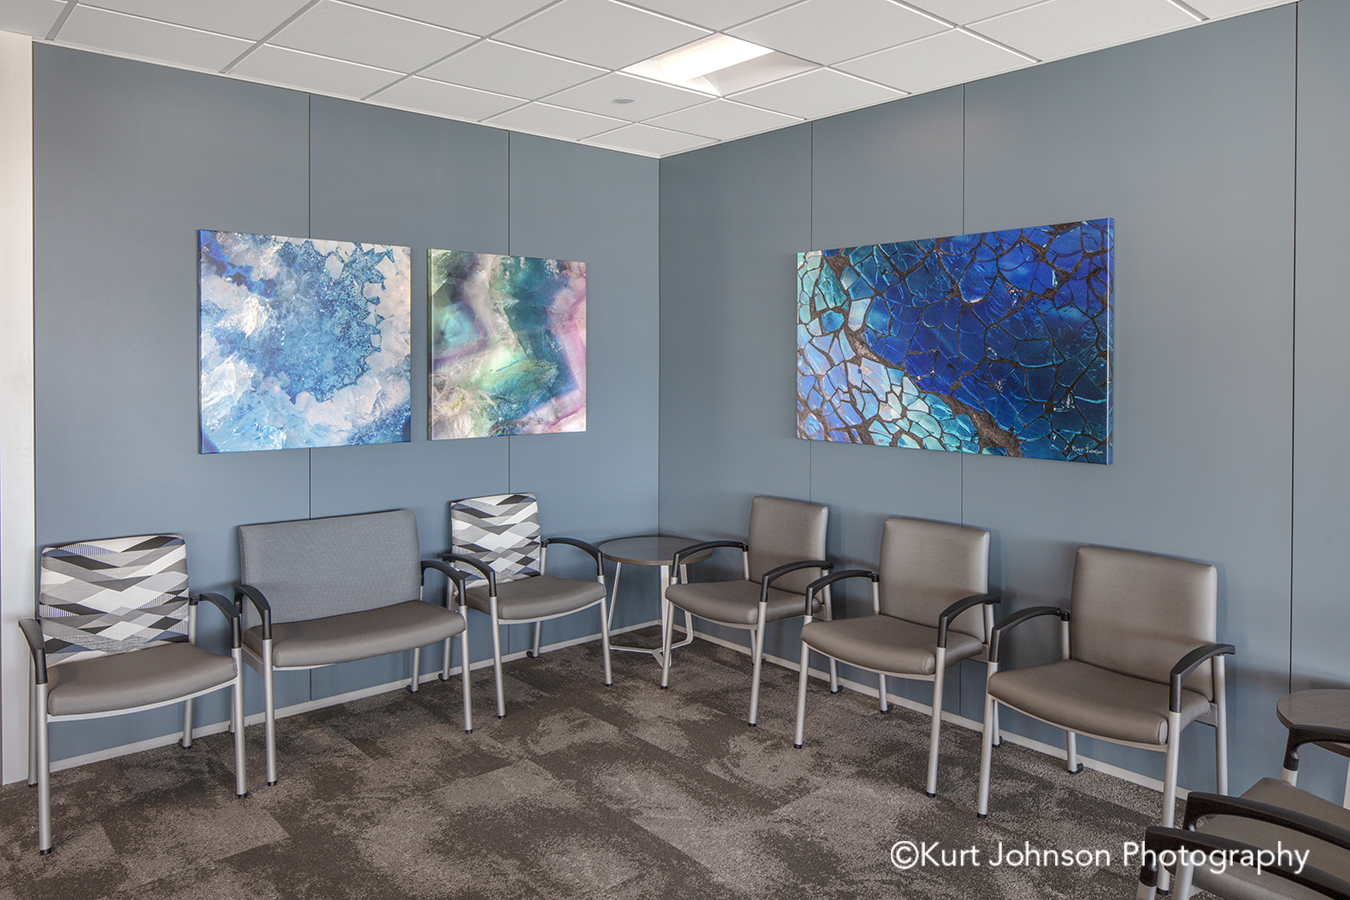 methodist physicians clinic elkhorn best care gallery wrapped wrap canvas wall art blue texture textures agate geode agates stained glass pattern healthcare installation lobby waiting chairs